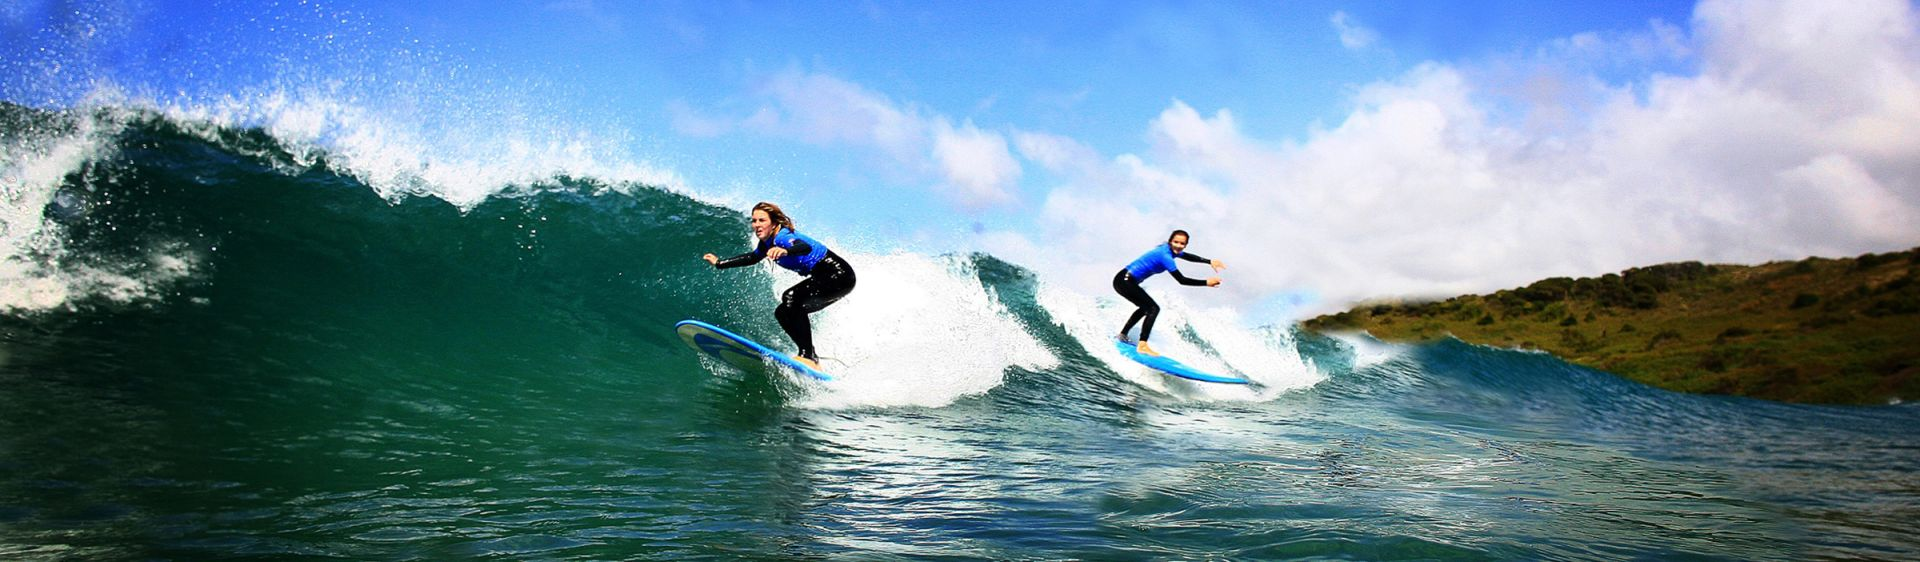 Pines Surfing - Shellharbour - South Coast